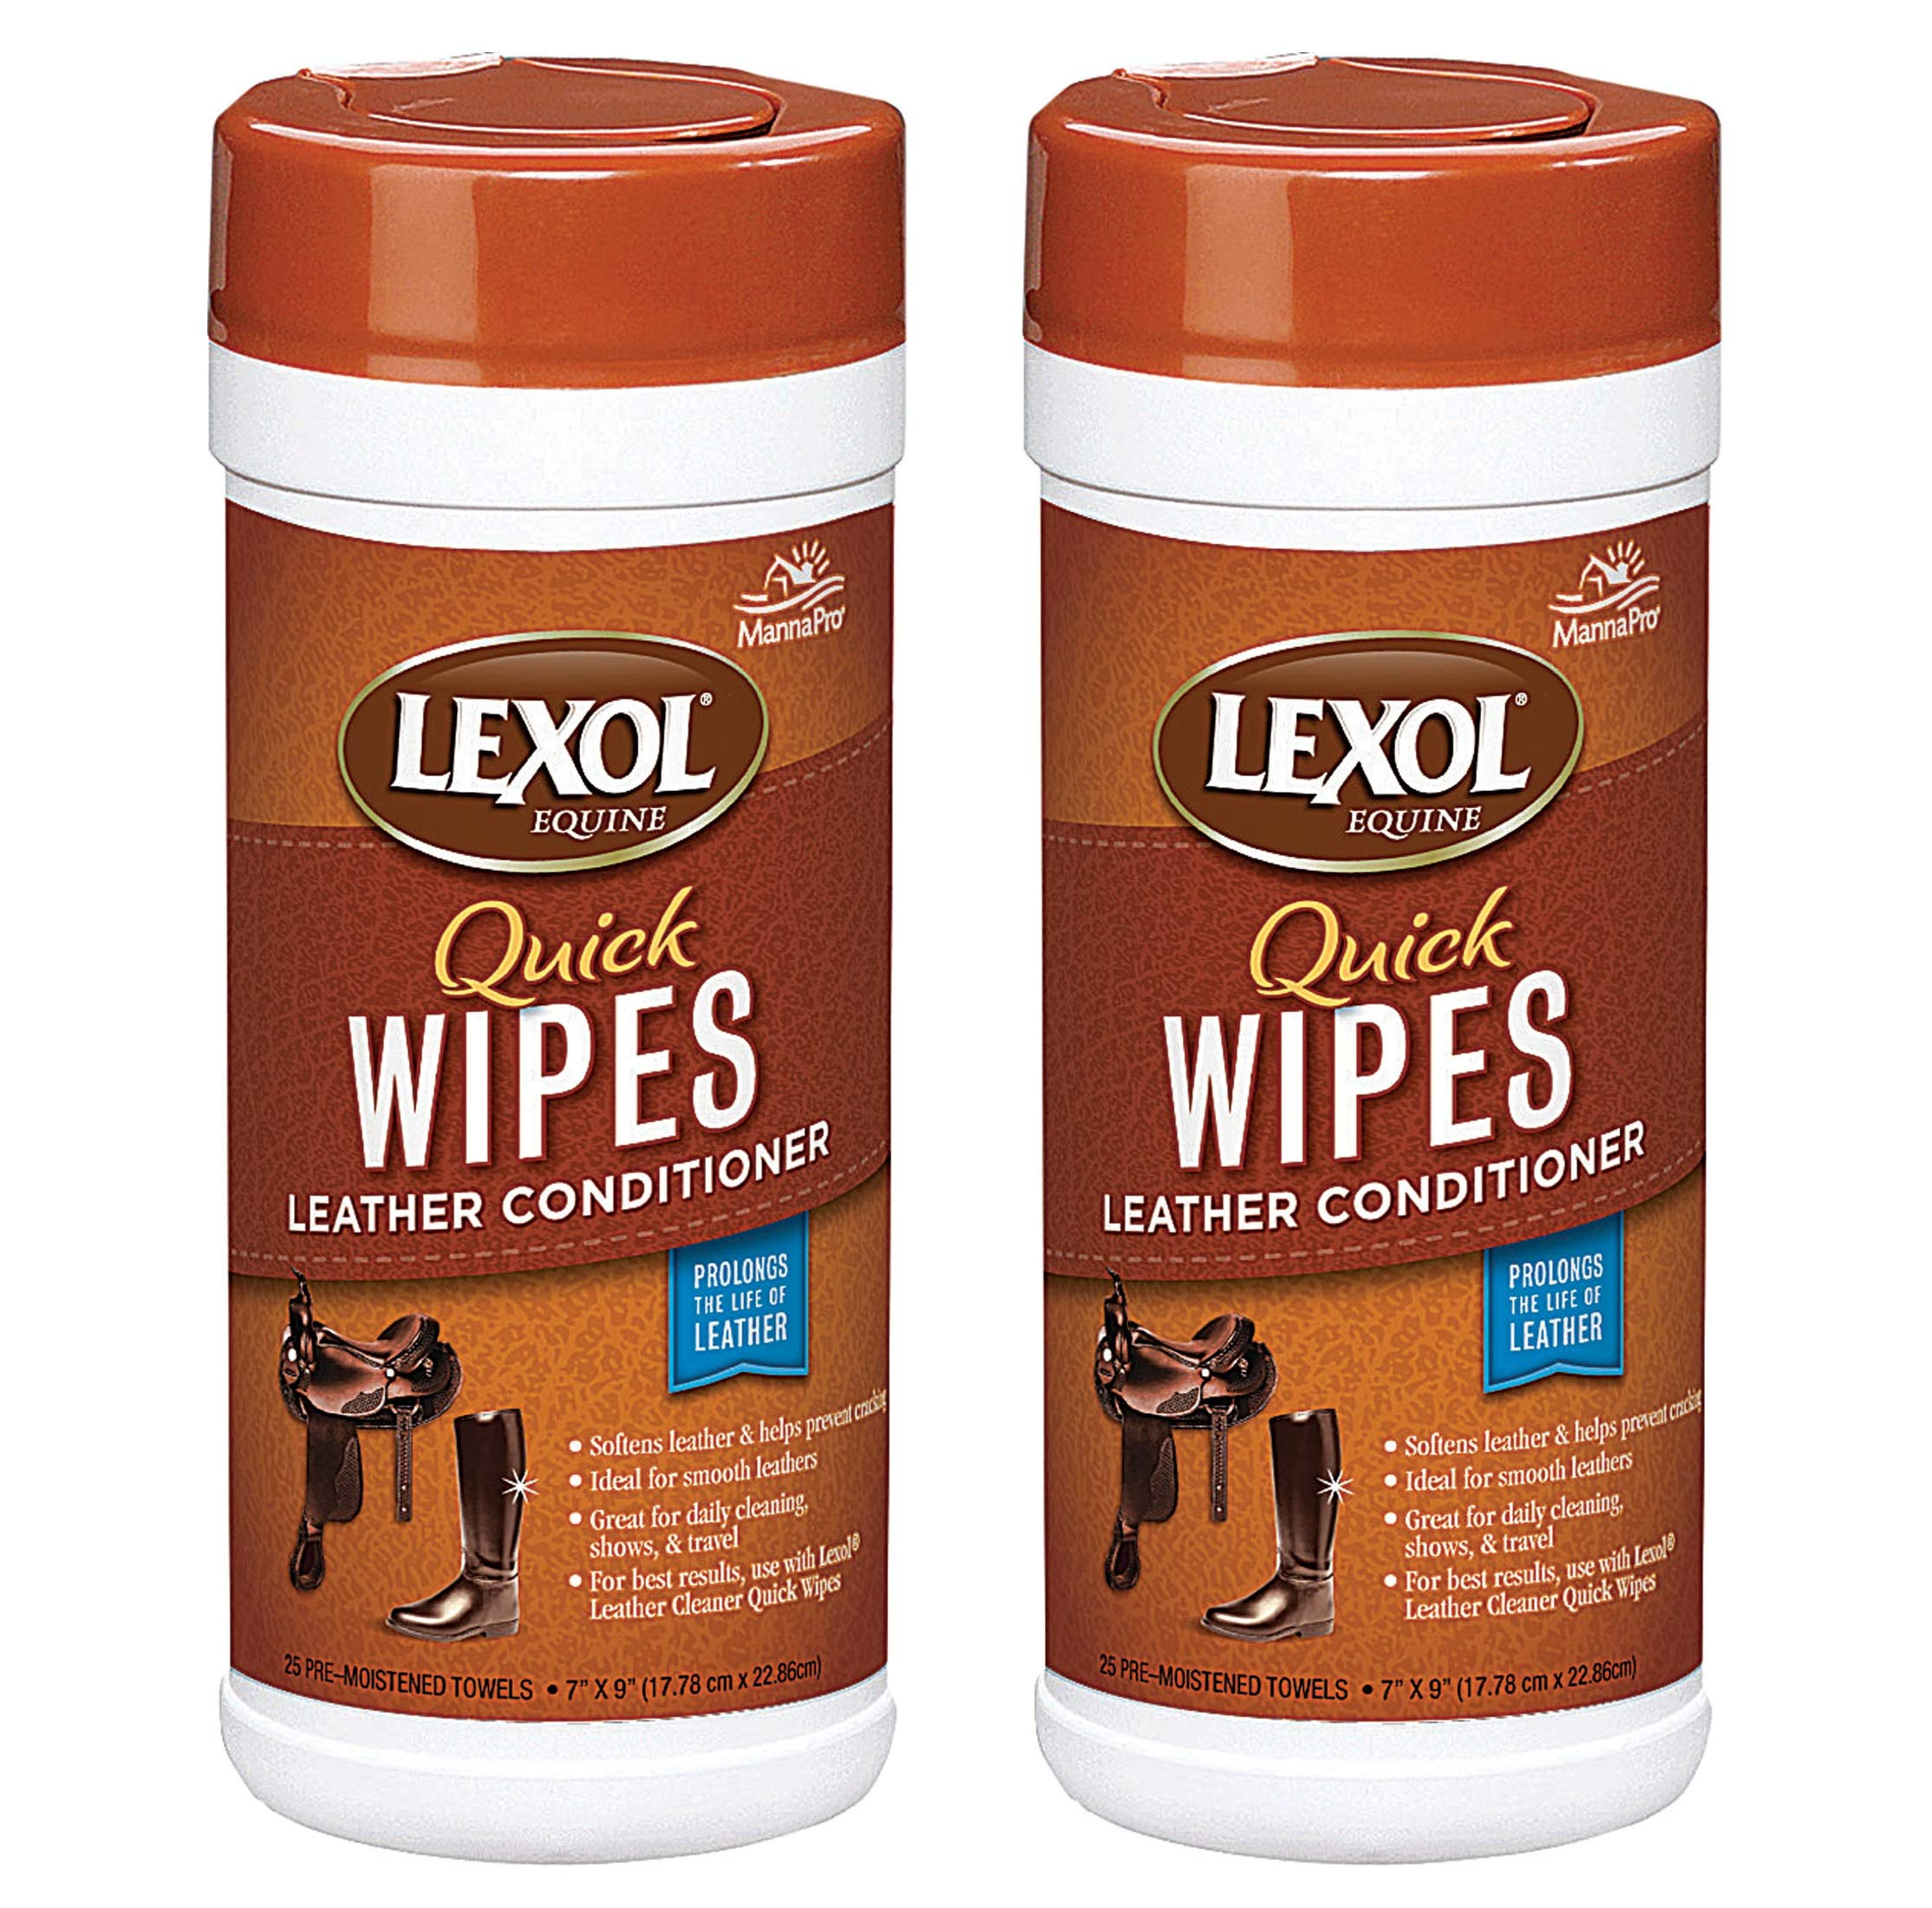 Lexol Equine Quick Wipes Leather Conditioner, 25 Count (2 Pack - 25 Count) by Lexol Equine